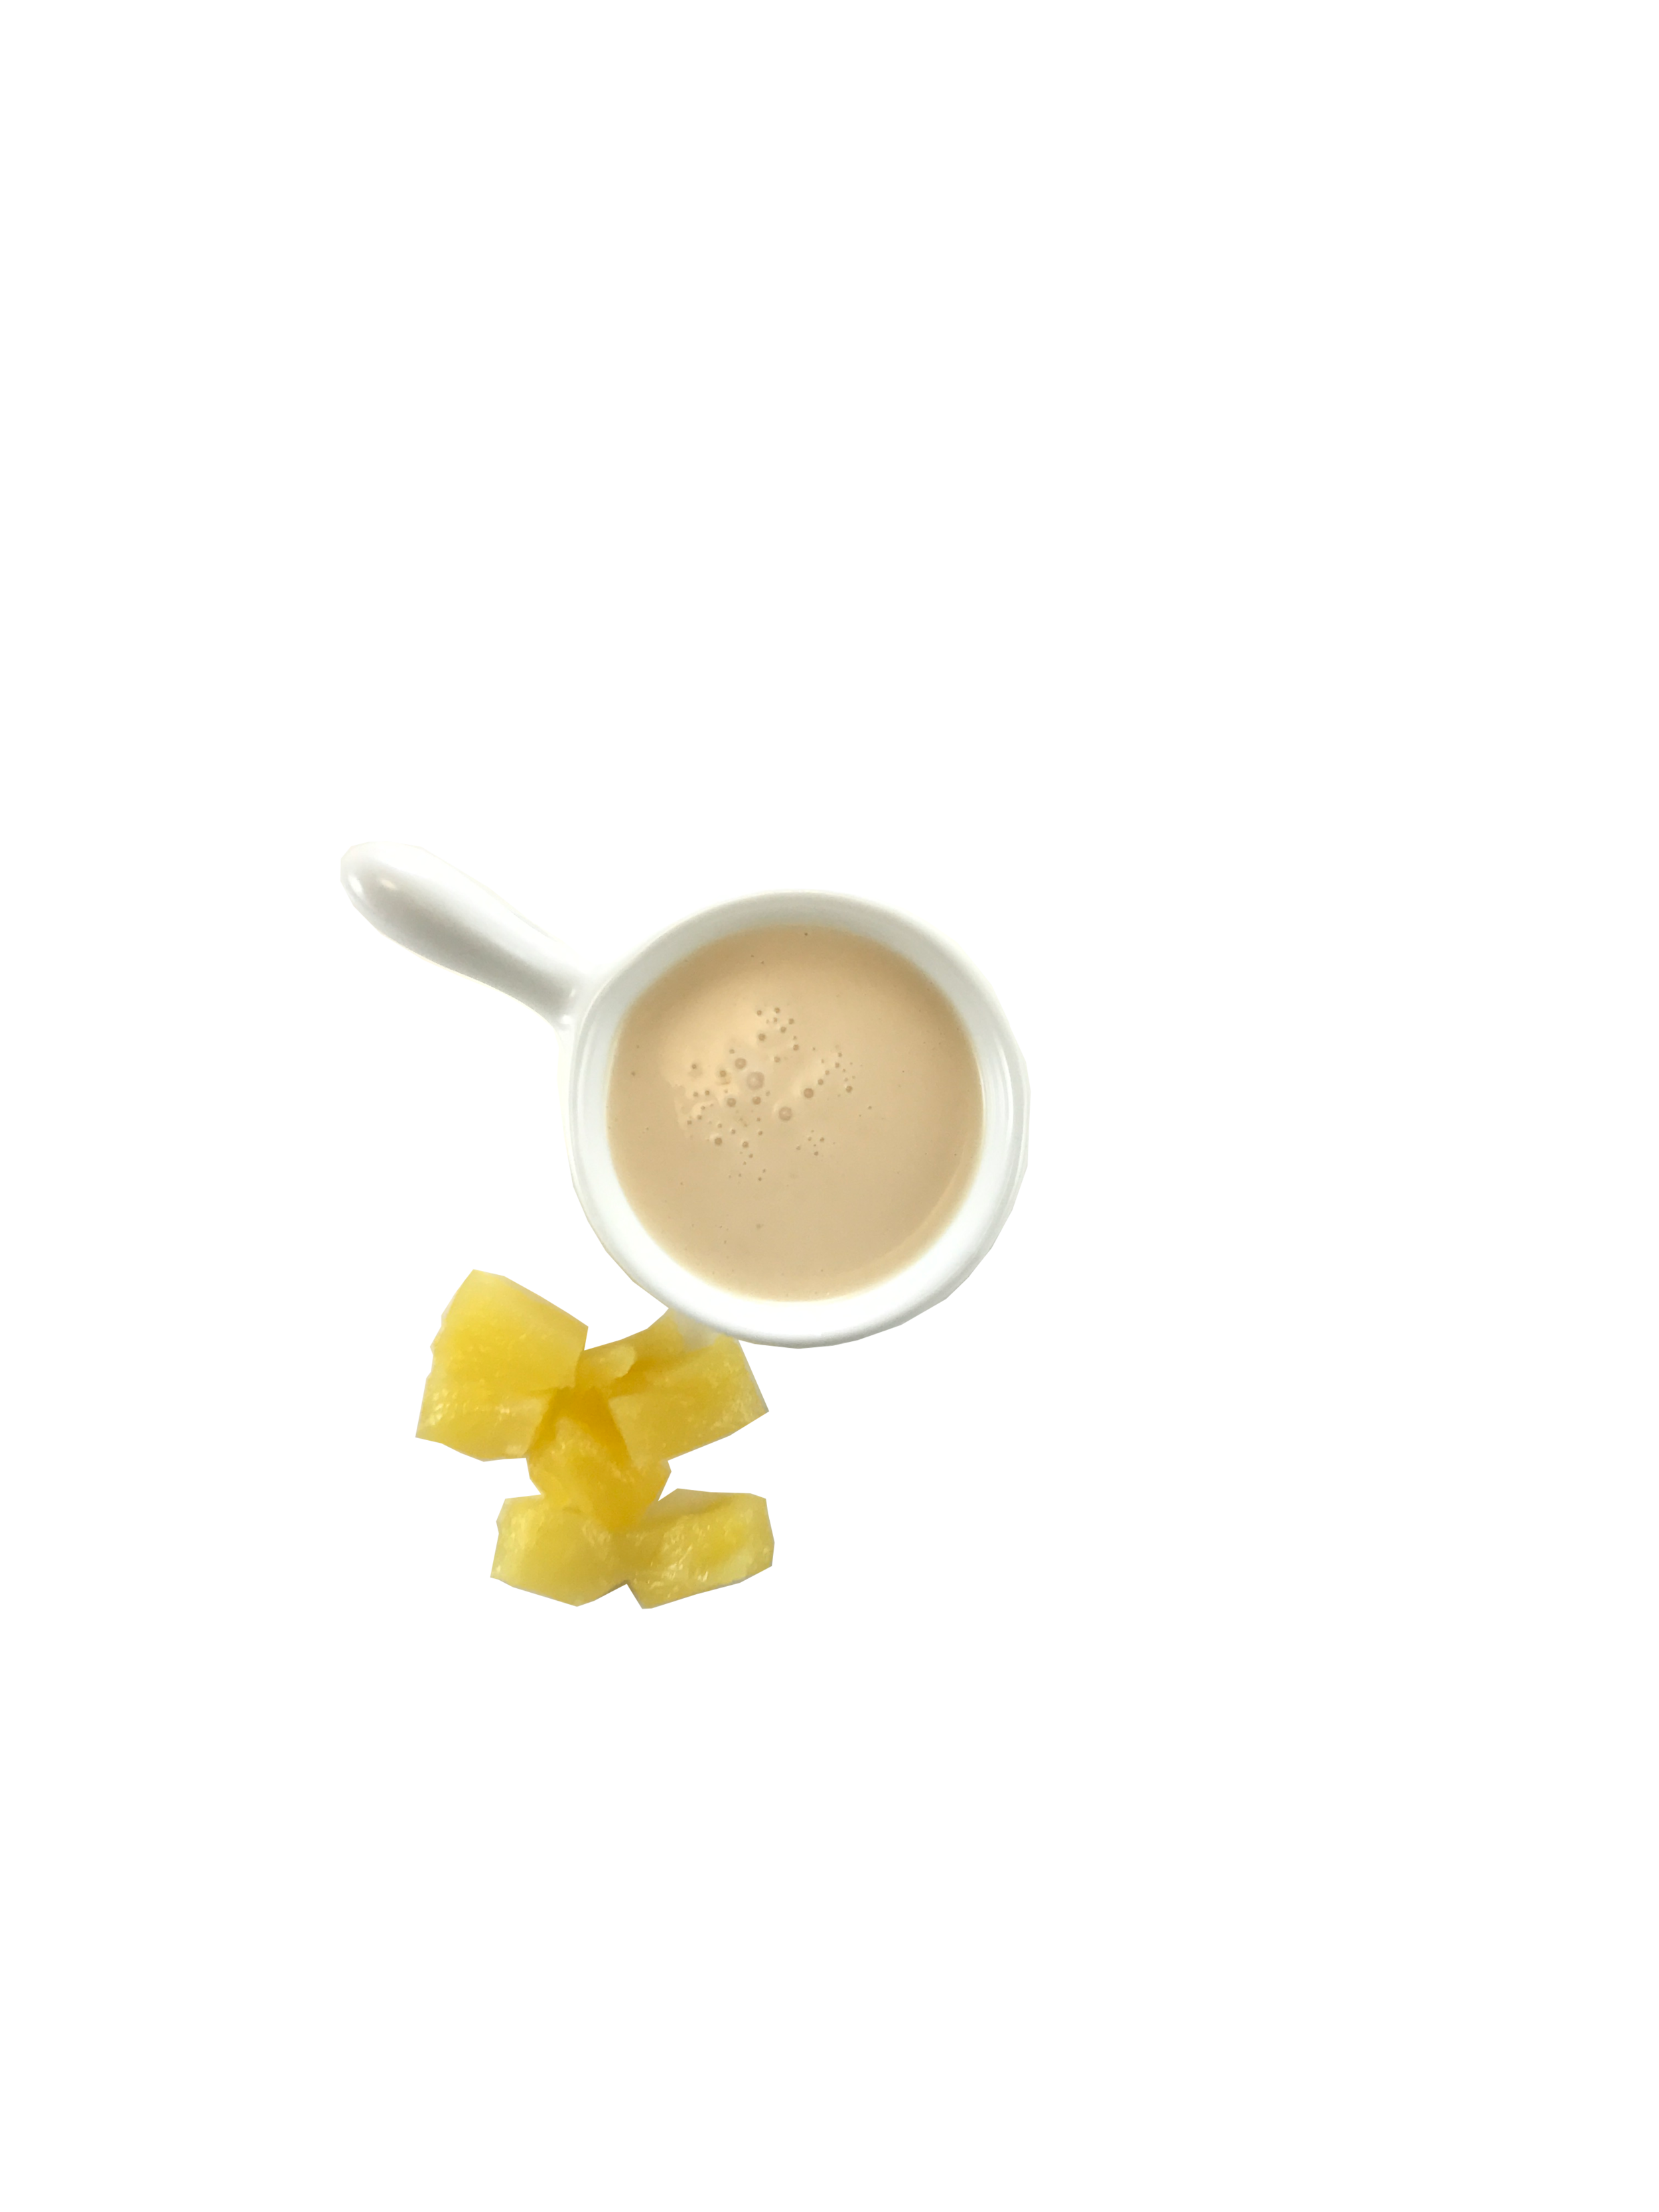 creamy.png